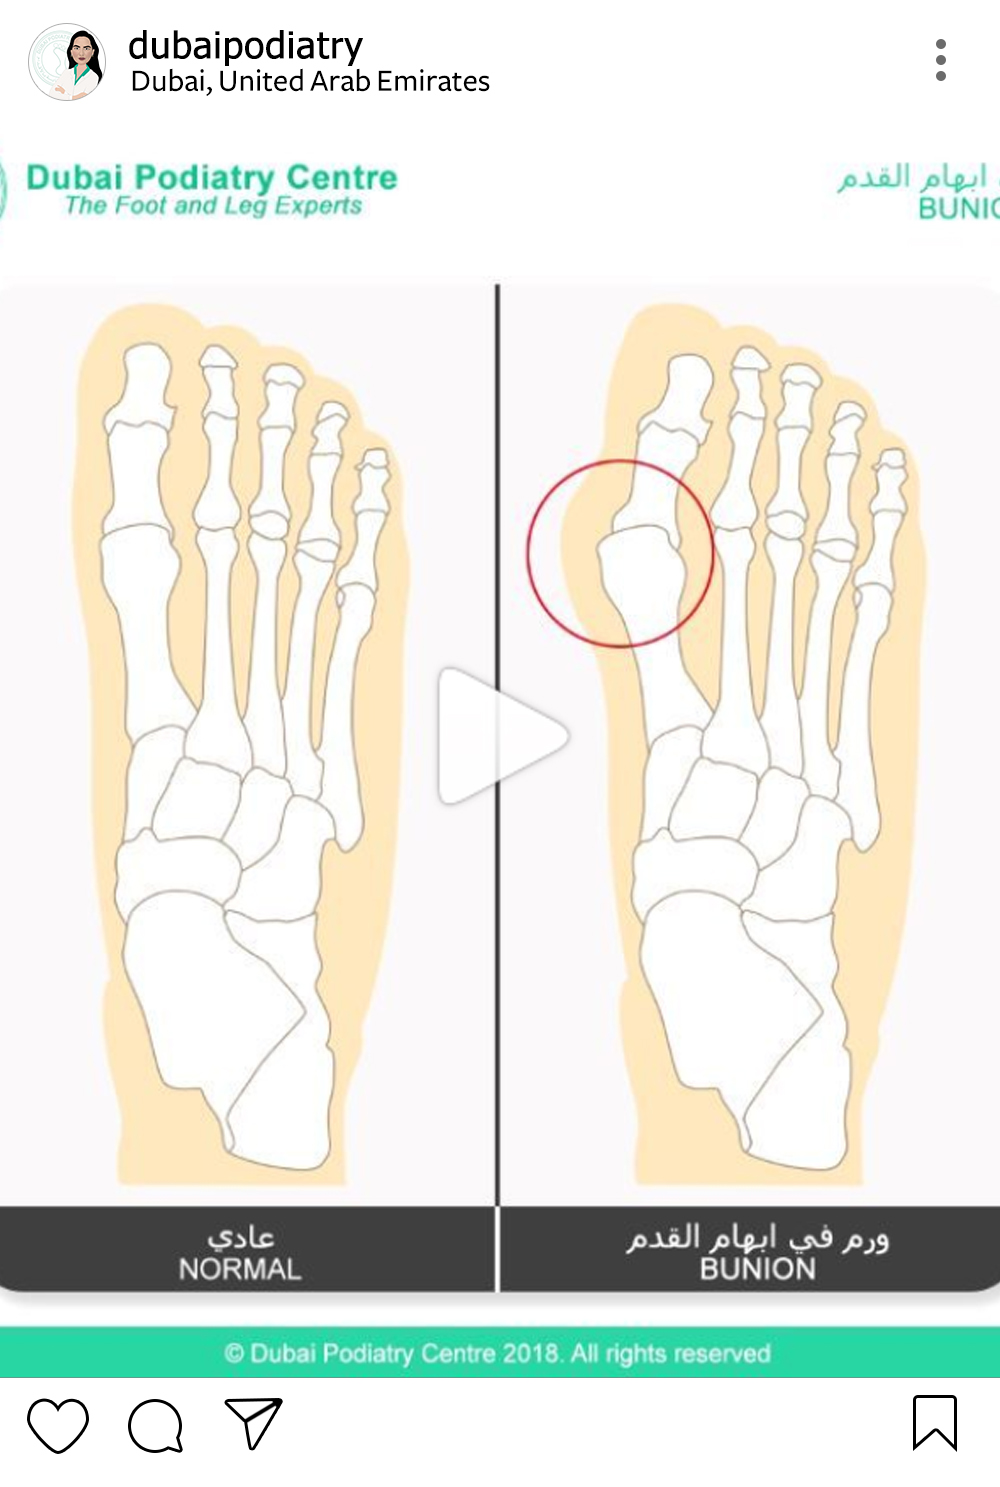 http://dubaipodiatry.com/wp-content/uploads/2019/01/Dubai-Podiatry-Instagram-4.jpg